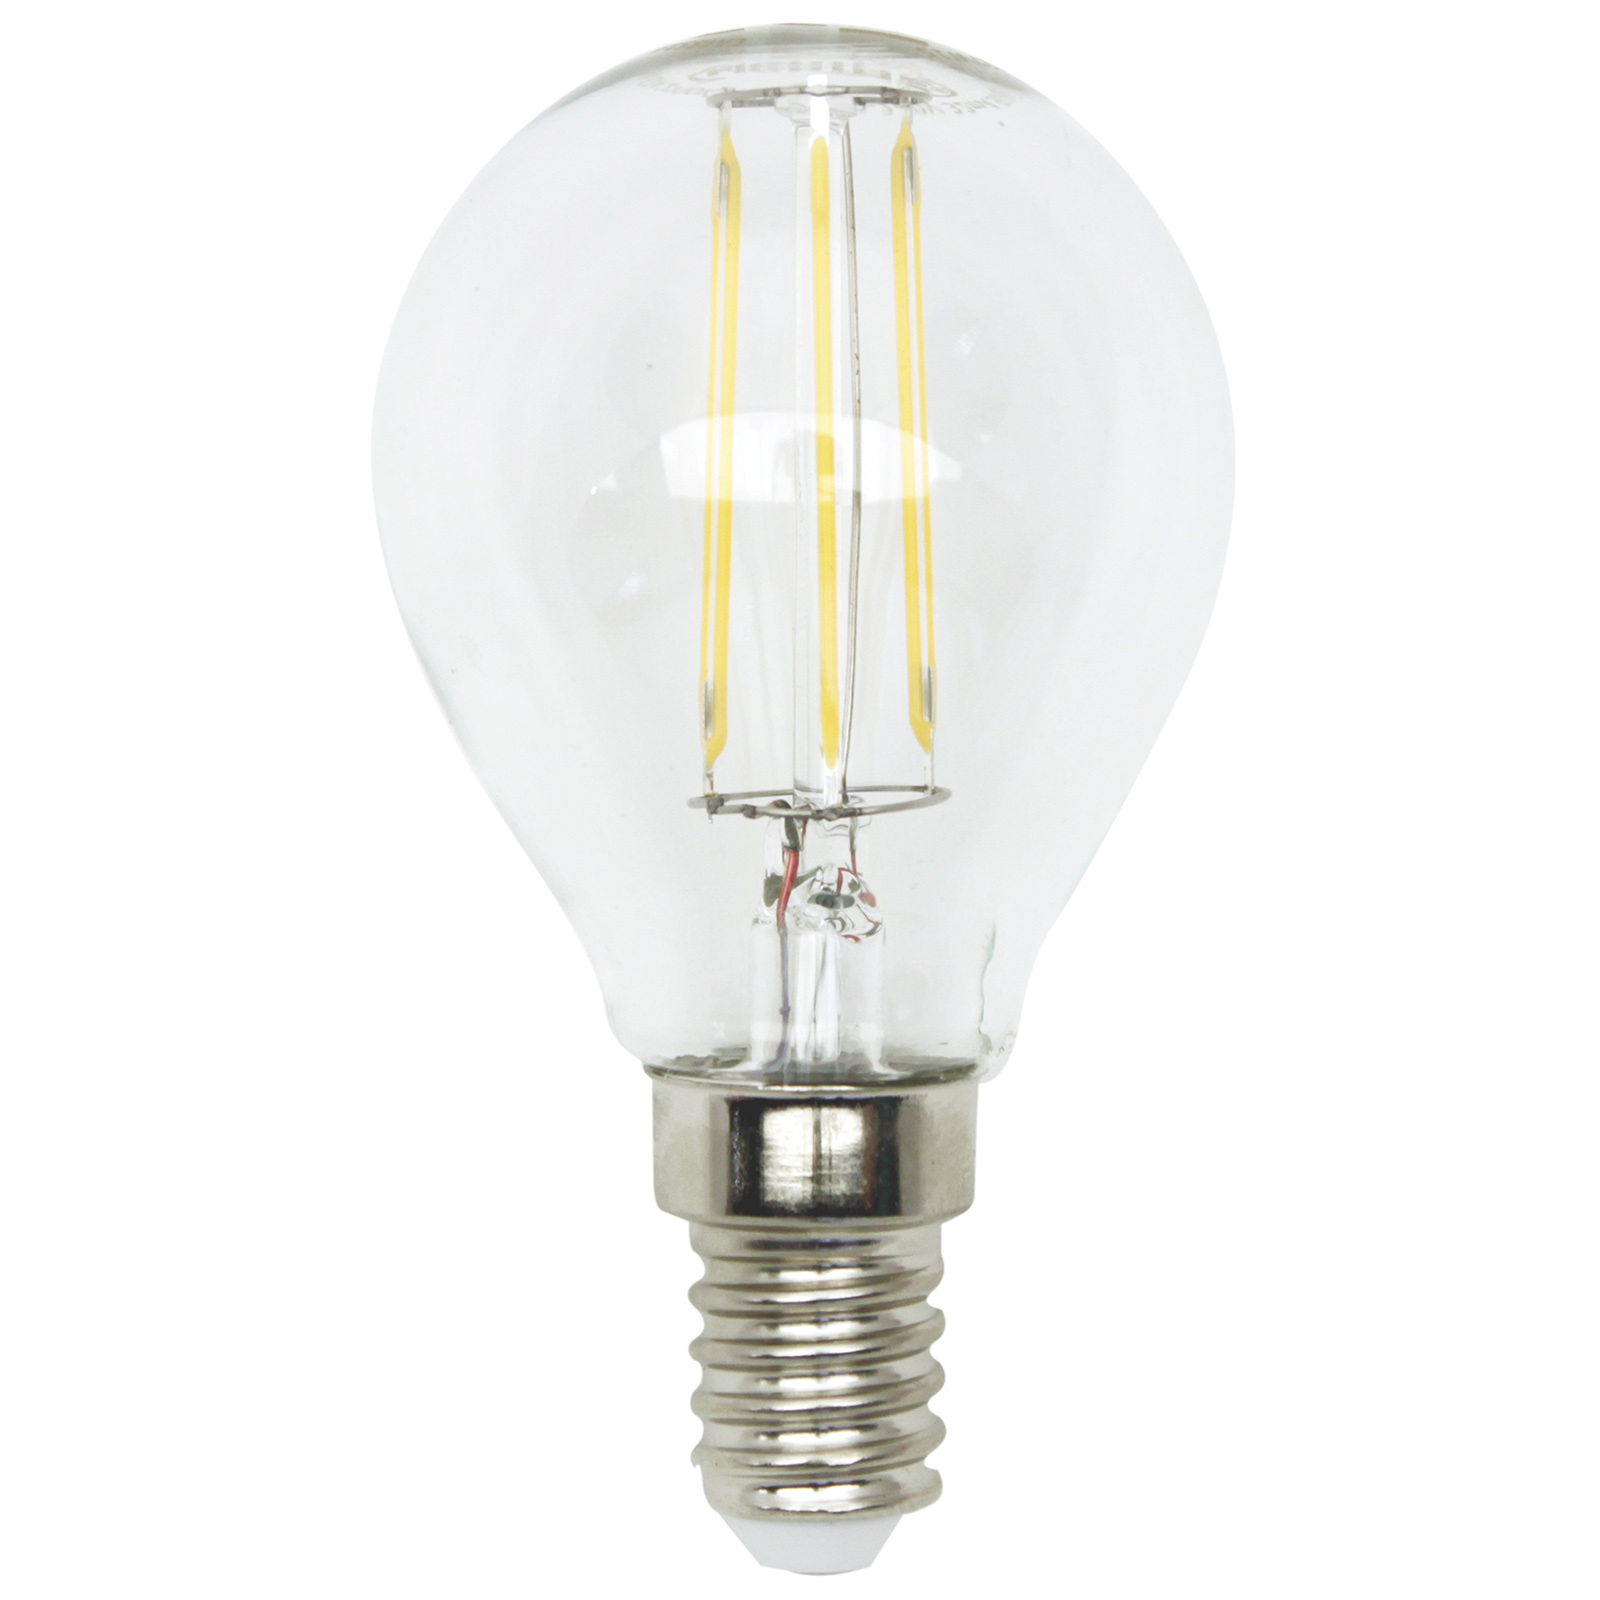 LED-Tropfenlampe Filament - E14 - 4 Watt - warmweiß